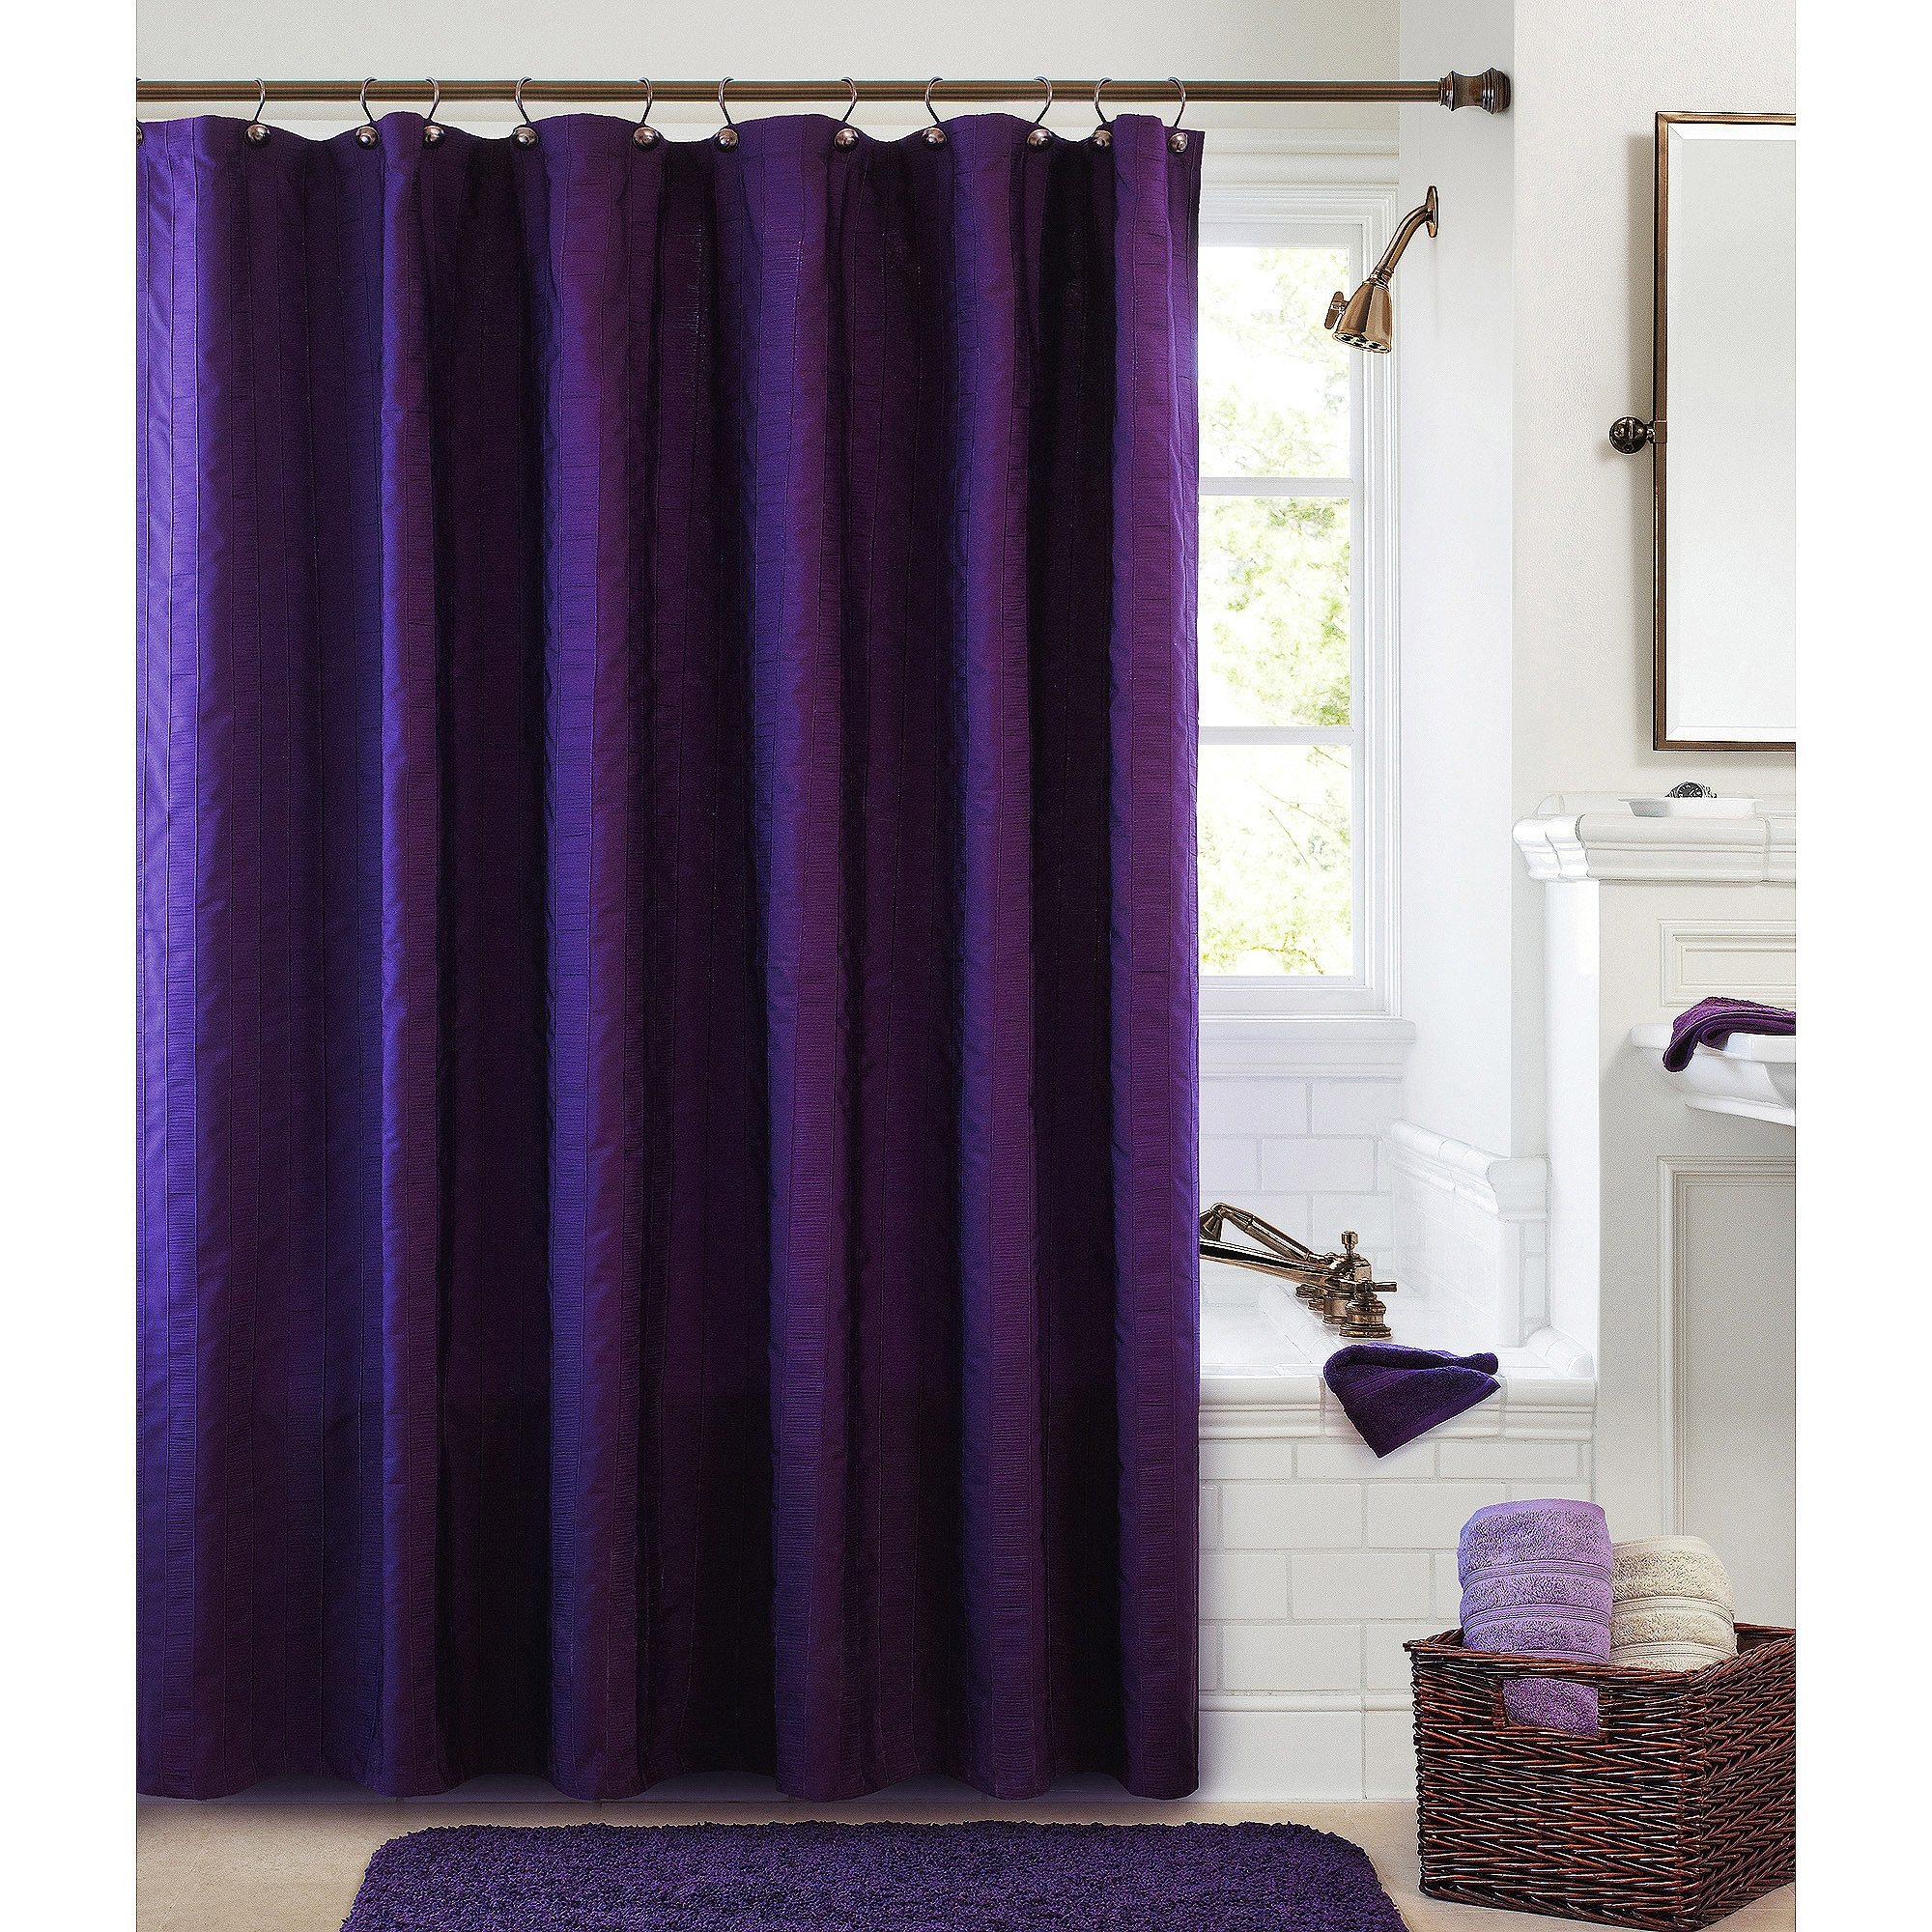 Solid Rust Colored Shower Curtain Shower Curtains Ideas